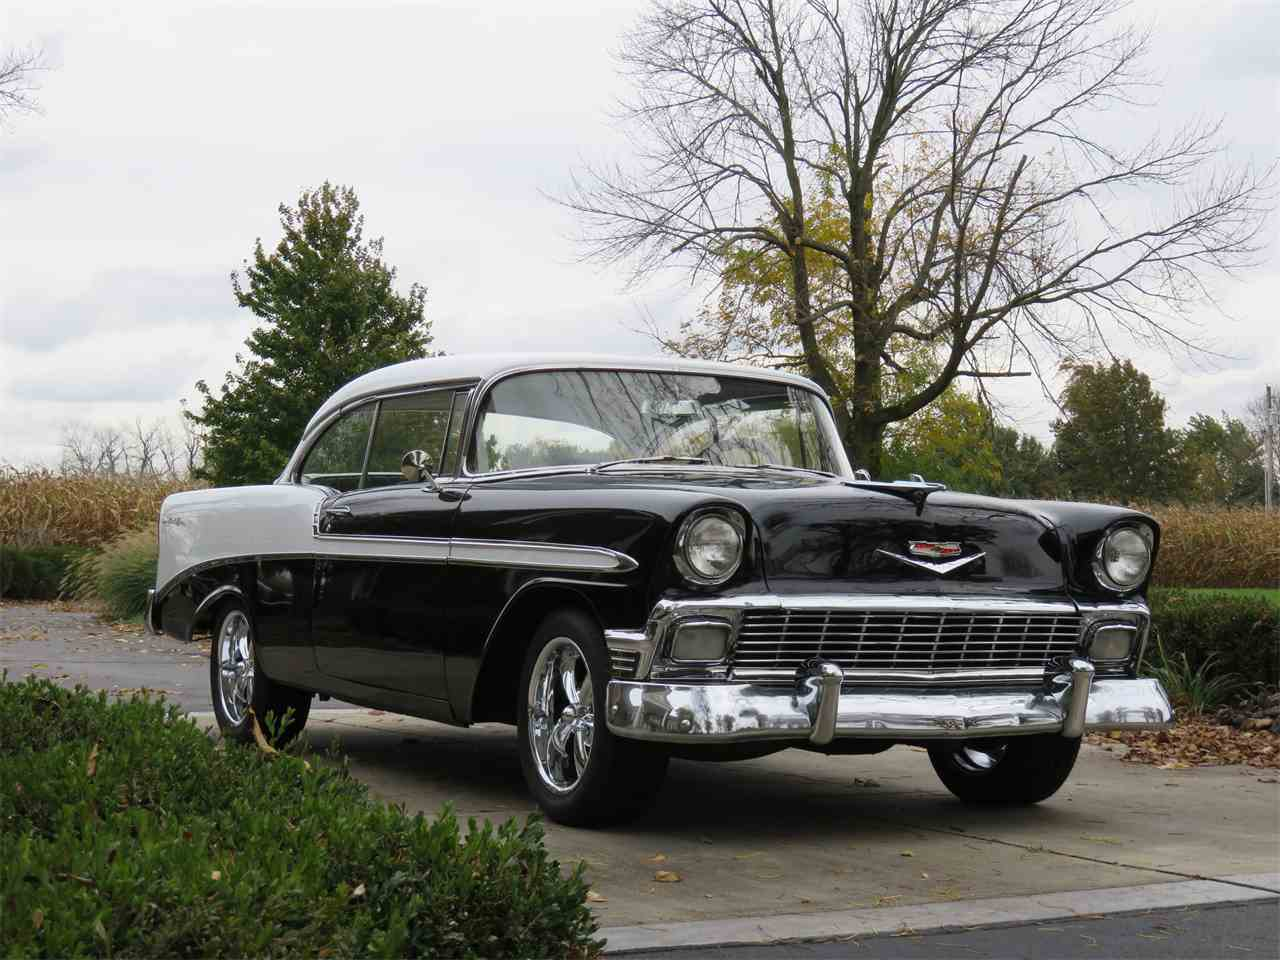 1956 chevrolet bel air for sale classic car liquidators - 1956 Chevrolet Bel Air Cc 1035573